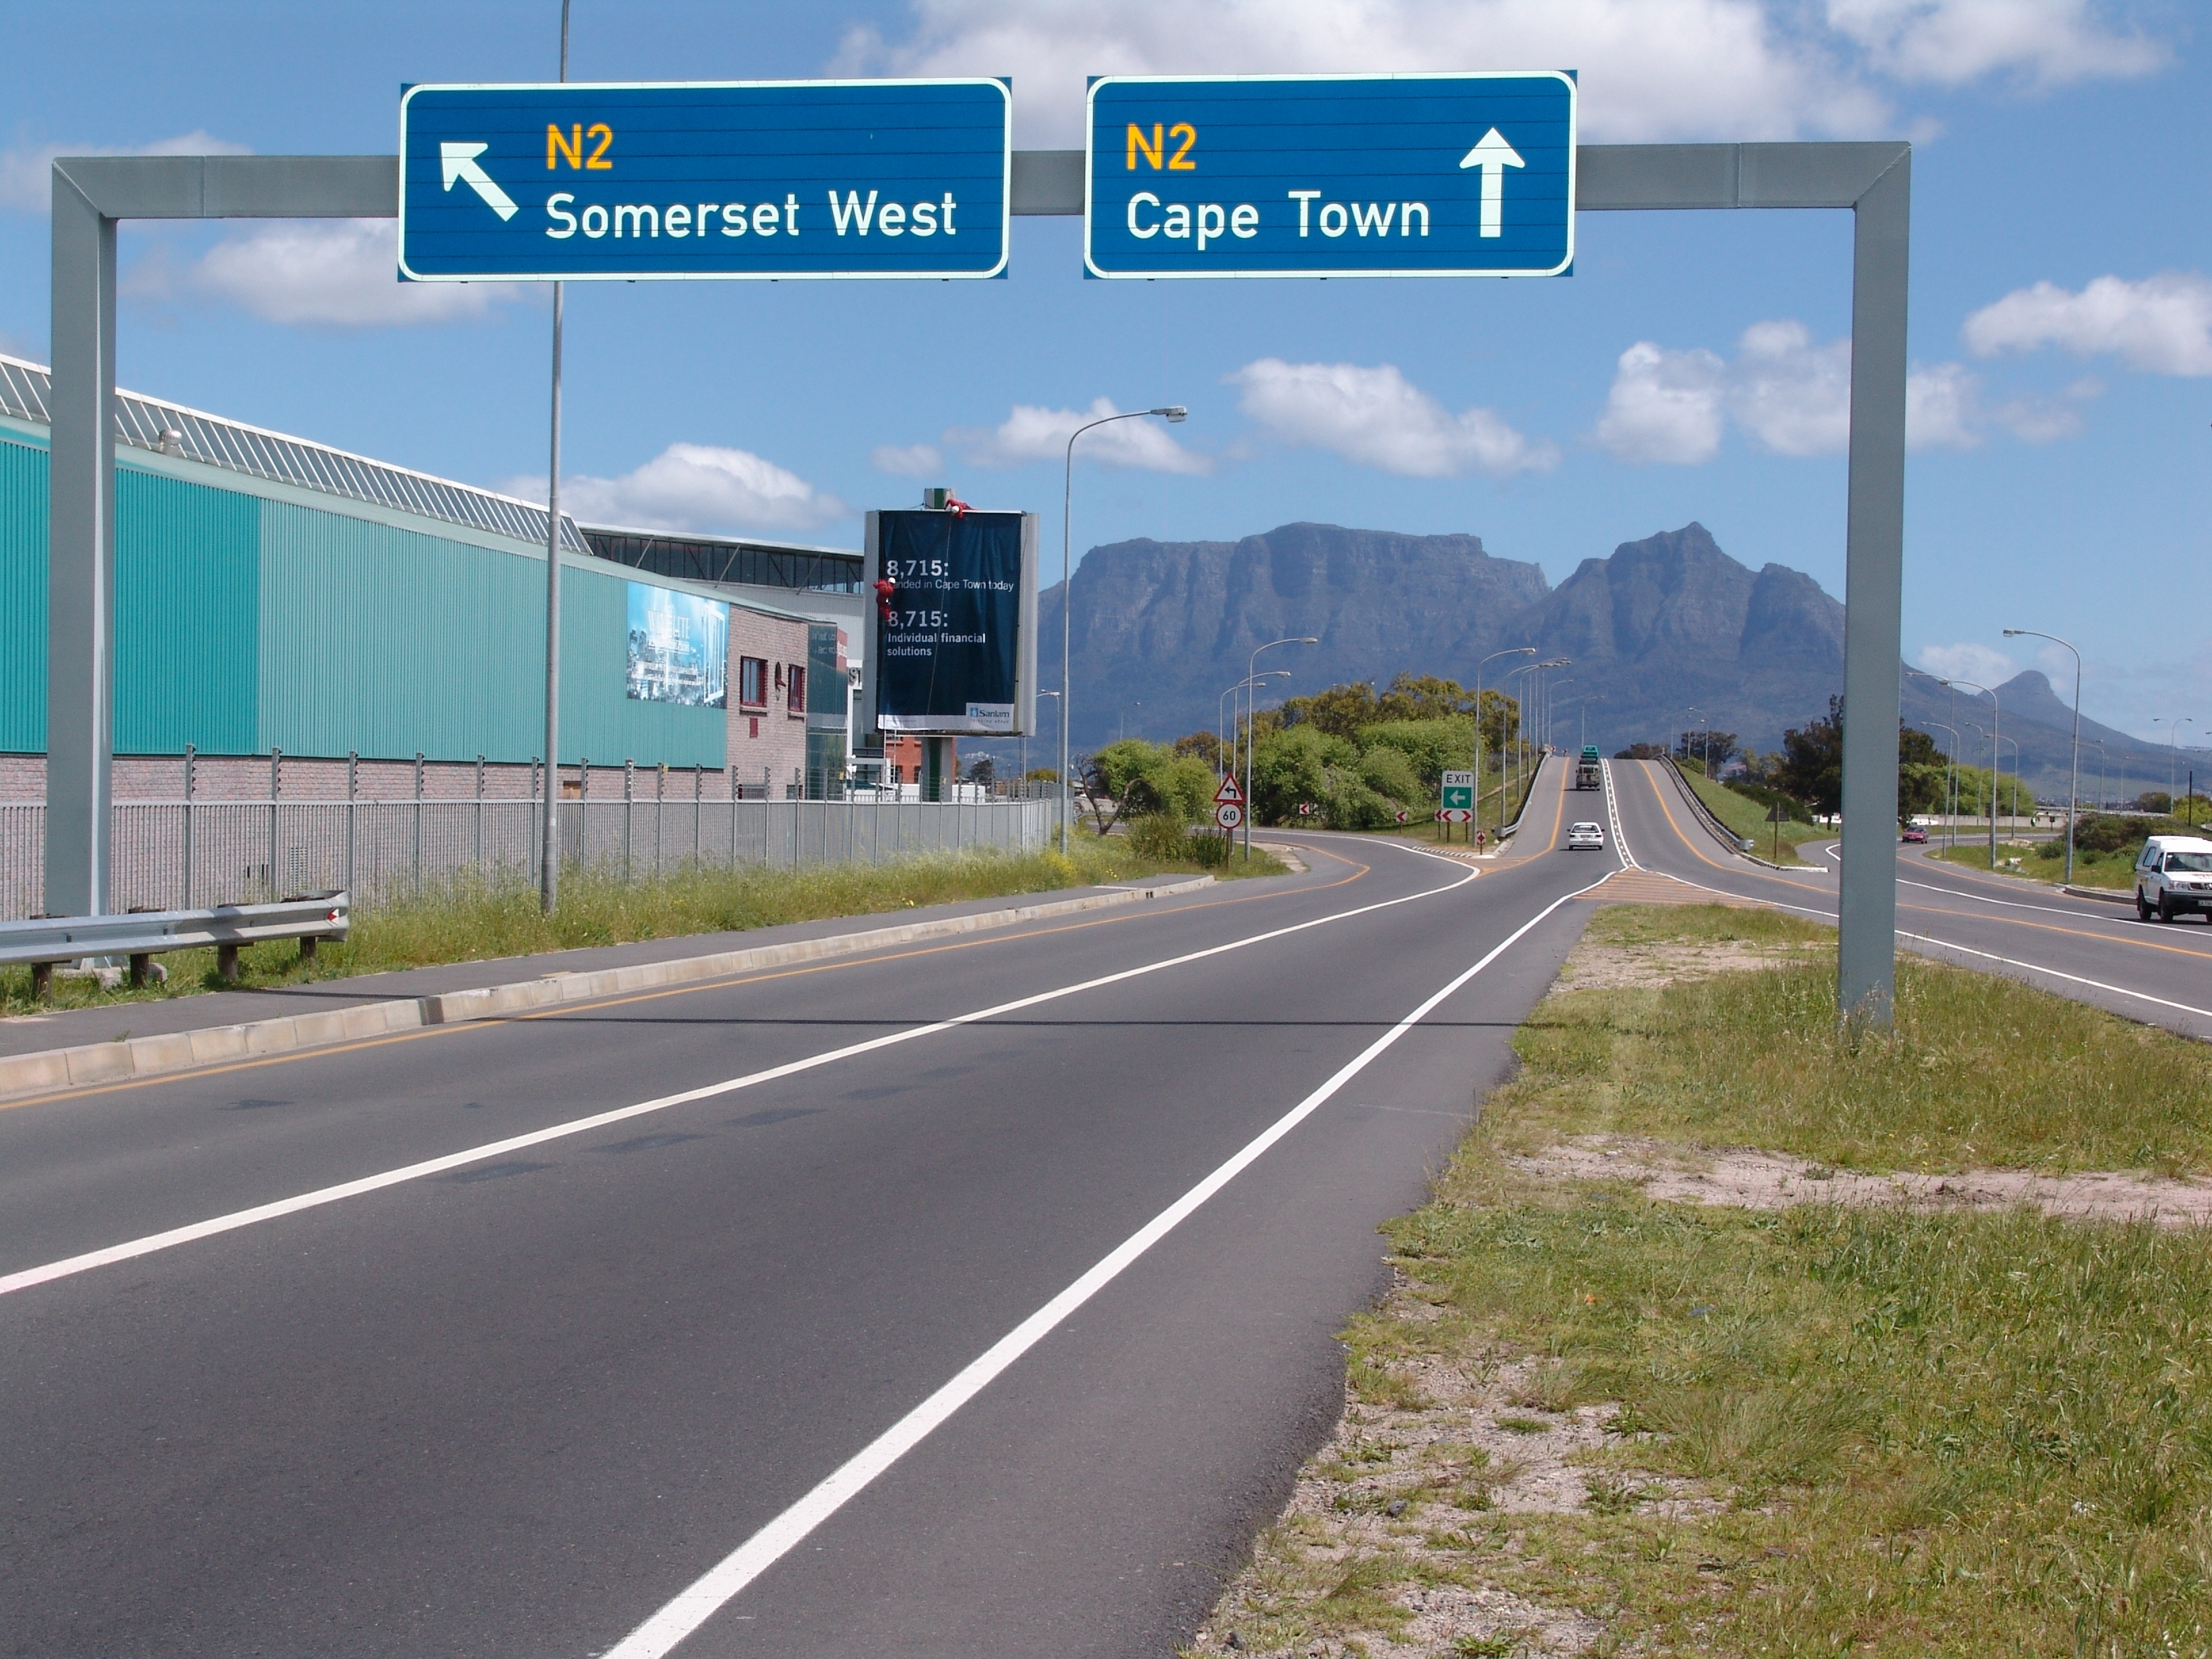 Cheap Flights From East London To Cape Town